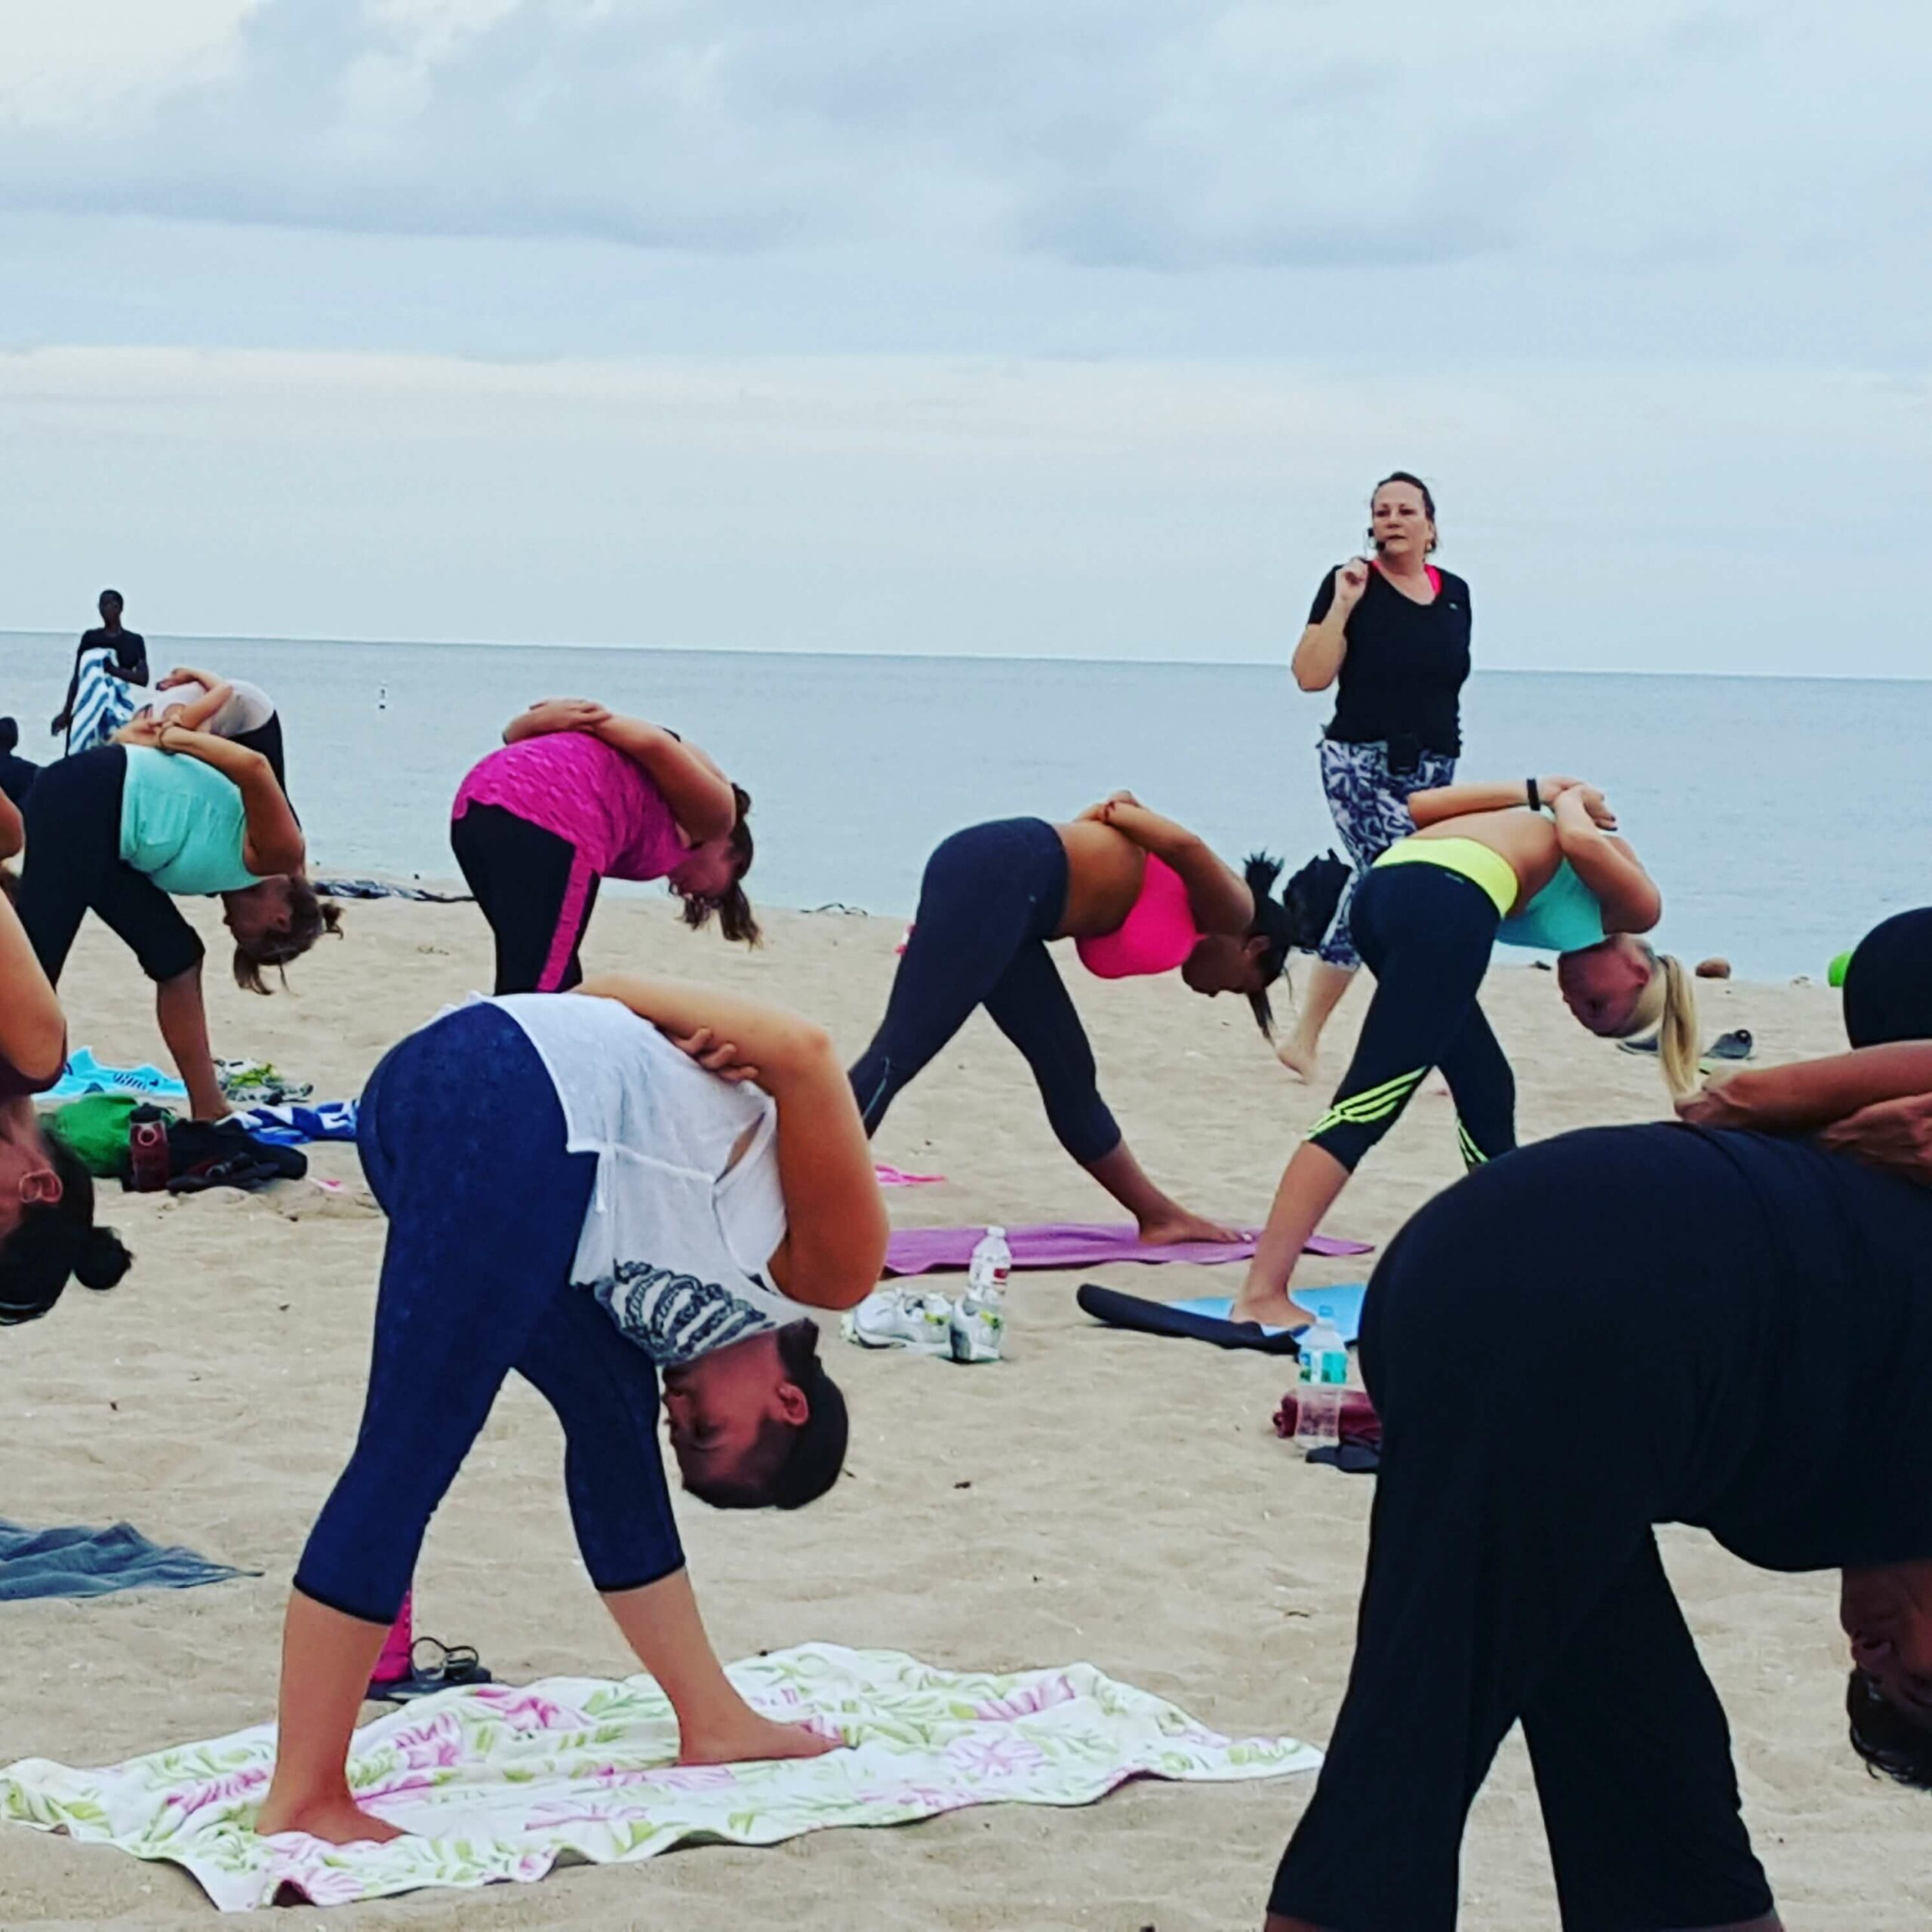 View of students stretching on the beach